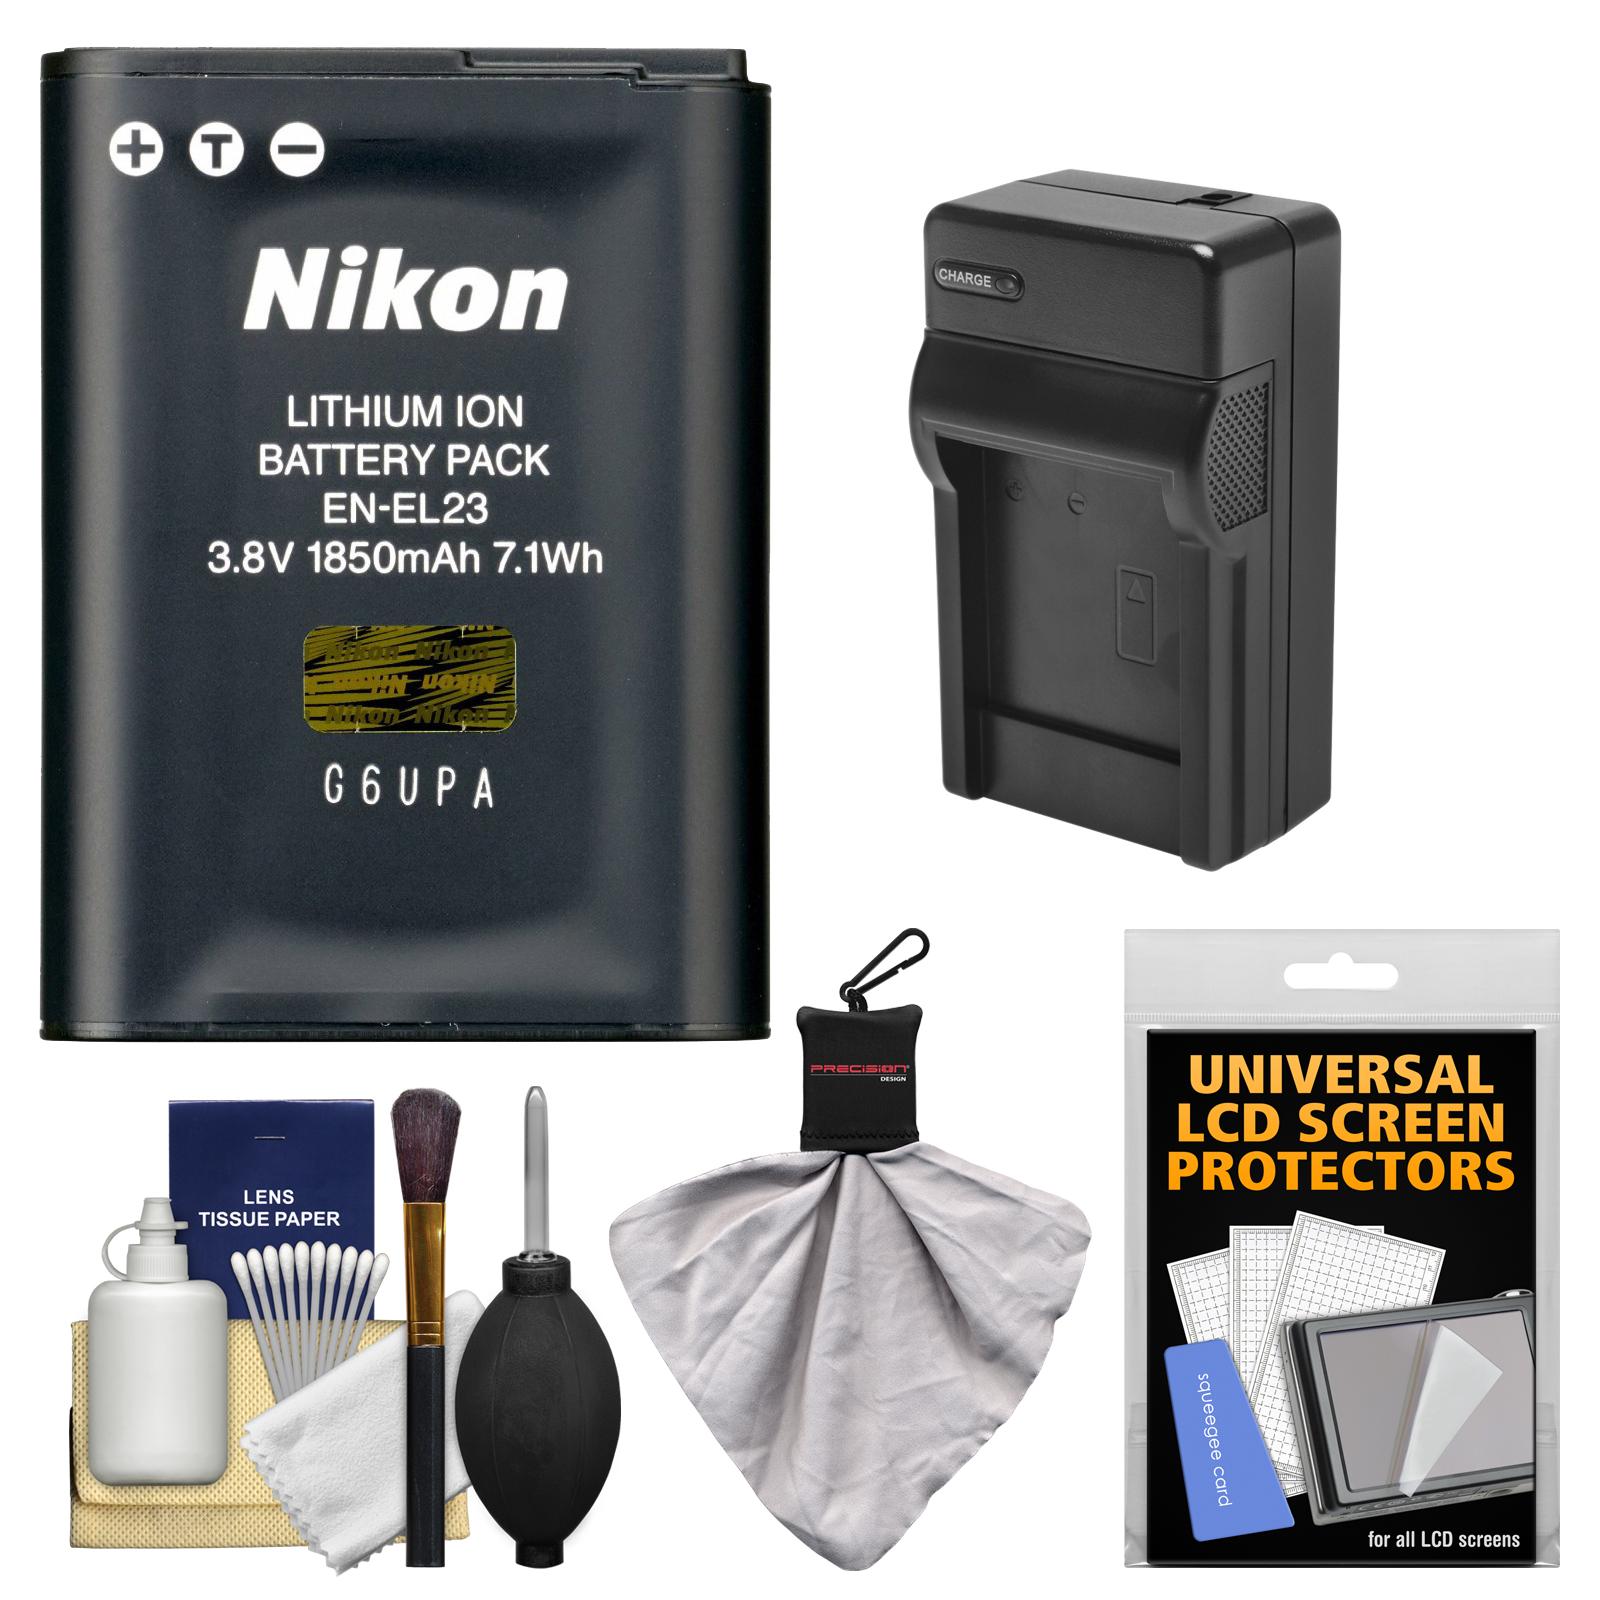 Nikon EN-EL23 Rechargeable Li-ion Battery with Charger + Kit for Coolpix P600, S810c Camera